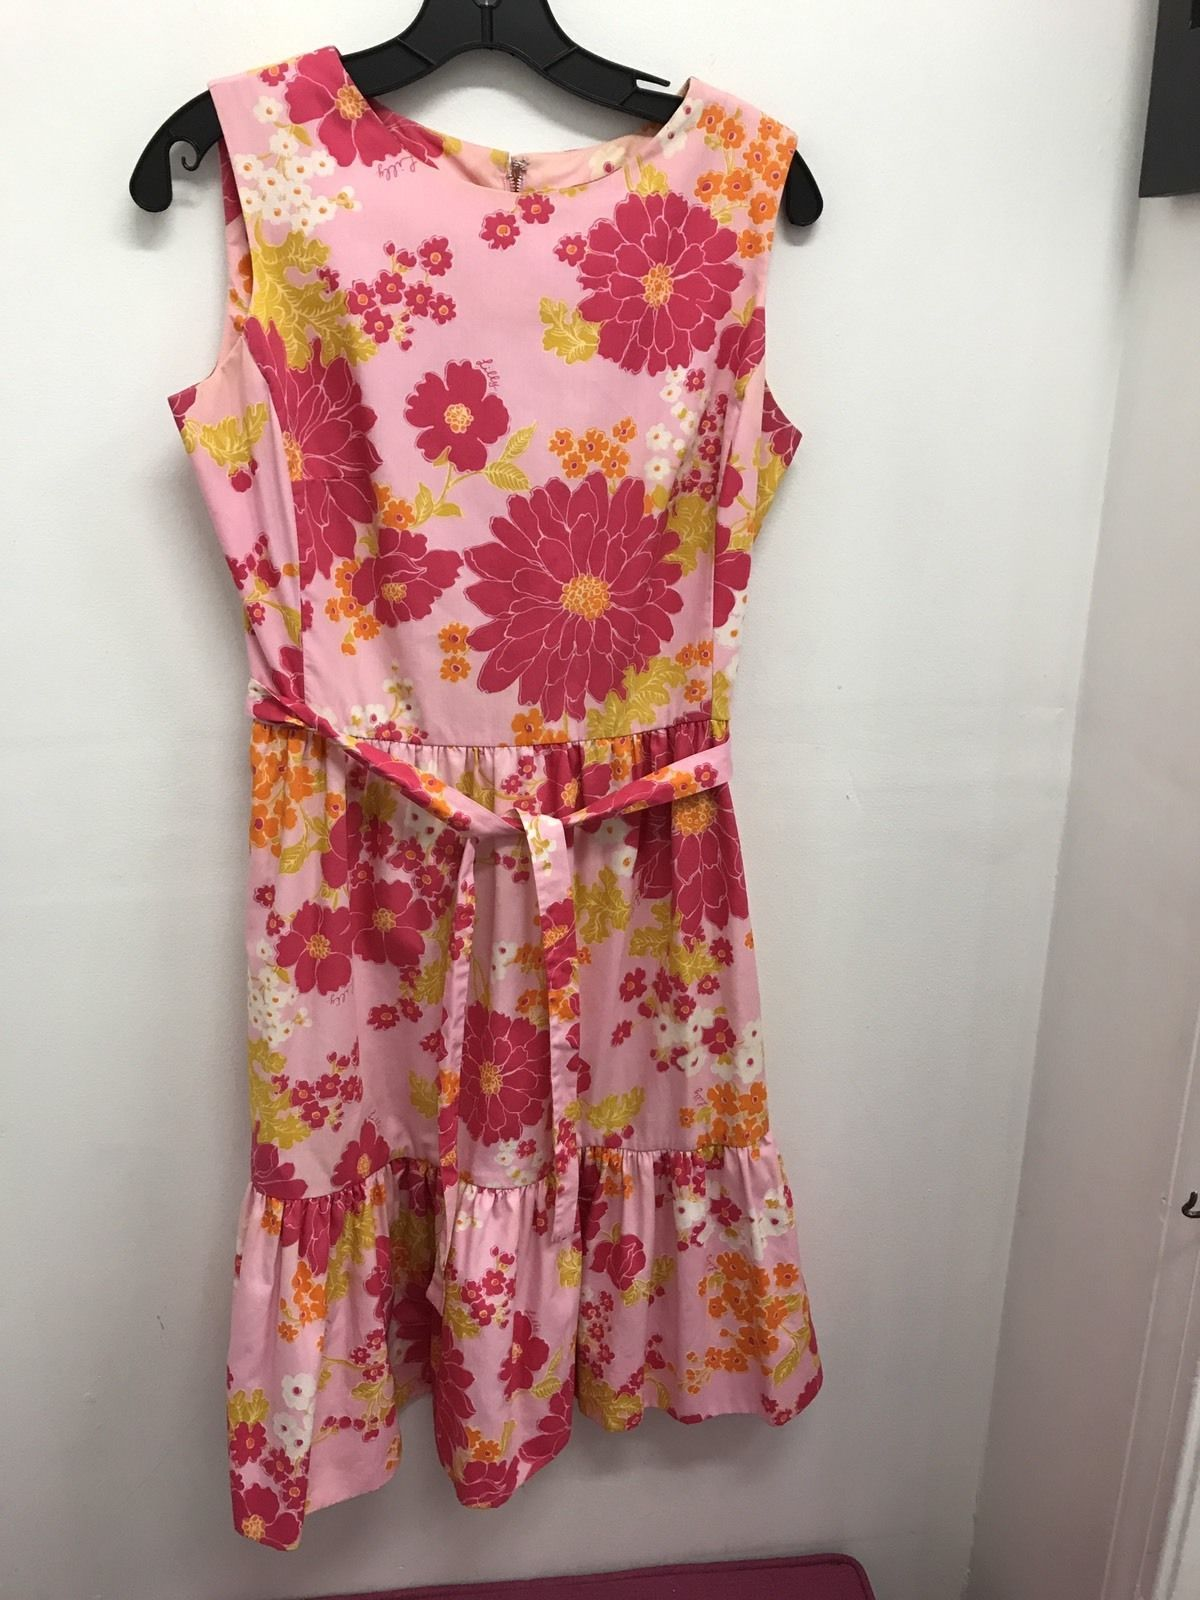 8e14bb40d07 THE LILLY Vintage Lilly Pulitzer Shift Dress Pink Floral Rare Print 1960s